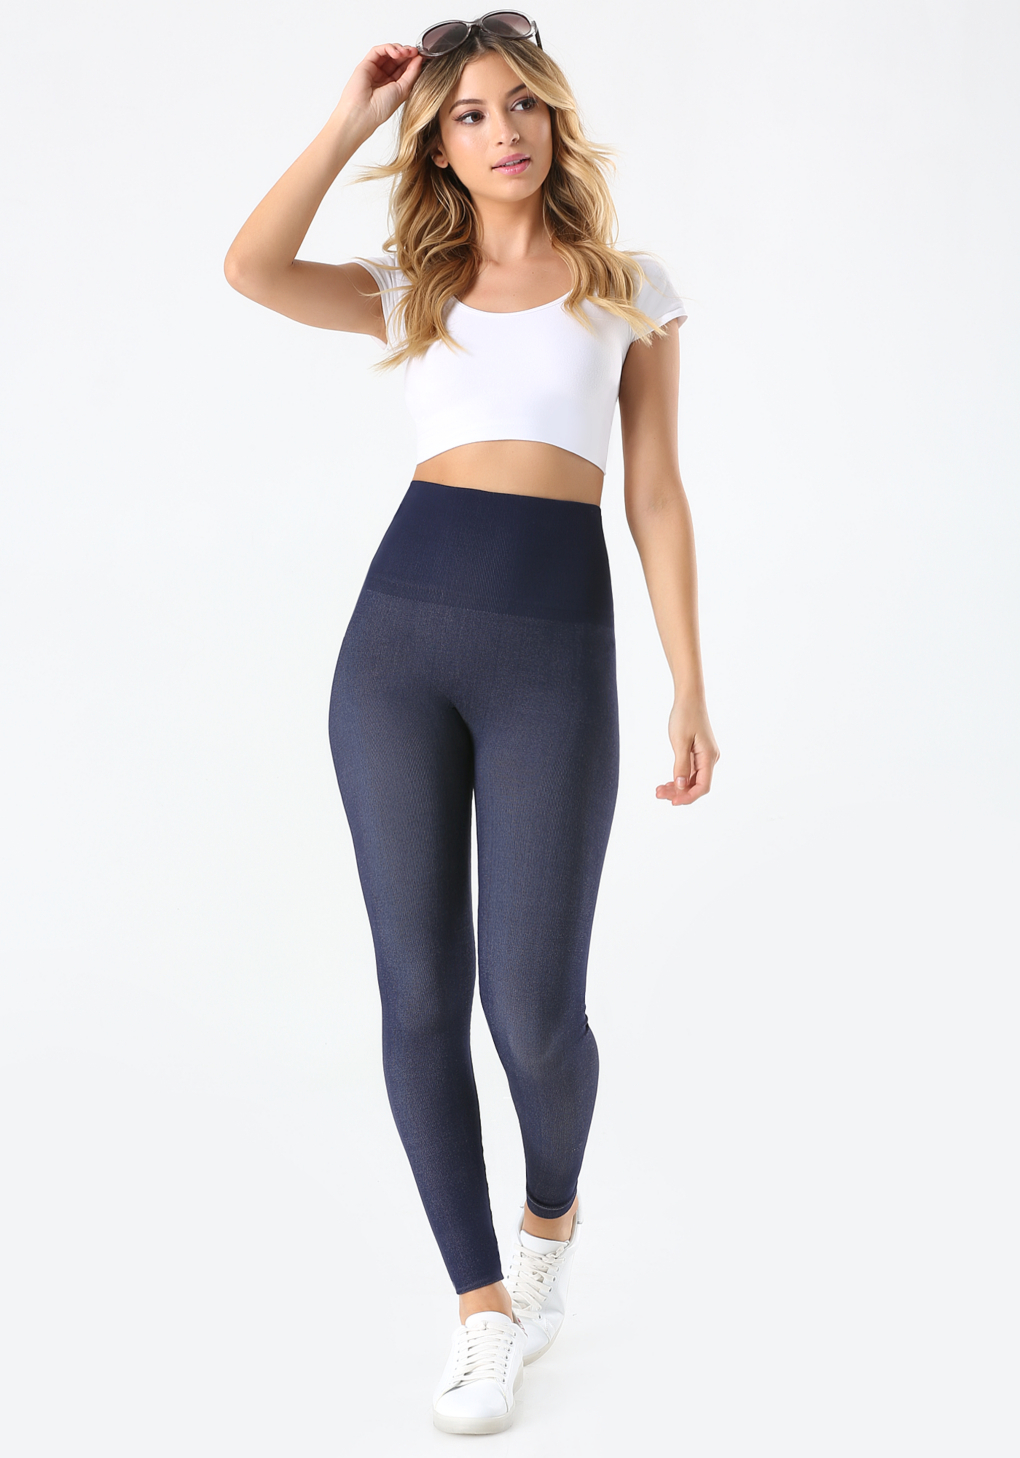 Blue Sports Leggings